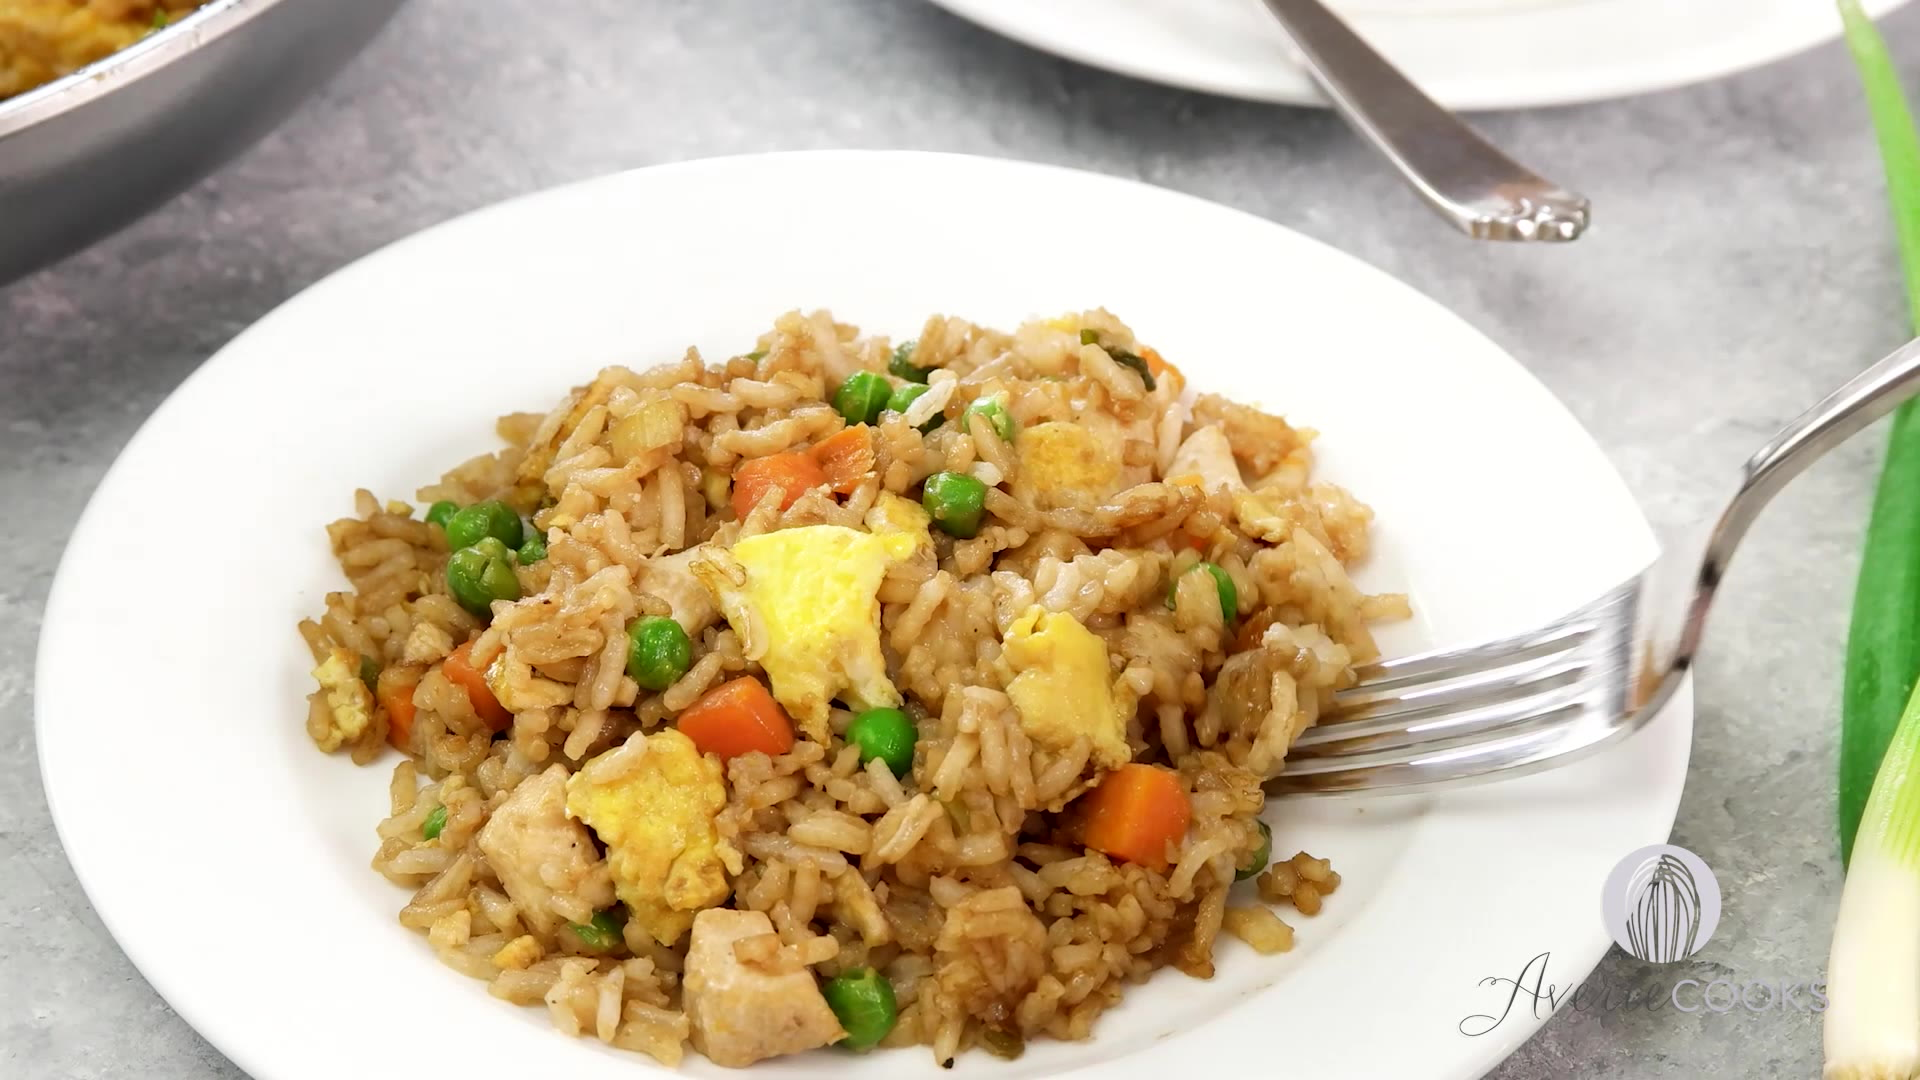 fried rice This recipe produces fried rice with individual grains and is lightly seasoned to allow the flavor of the rice to dominate.